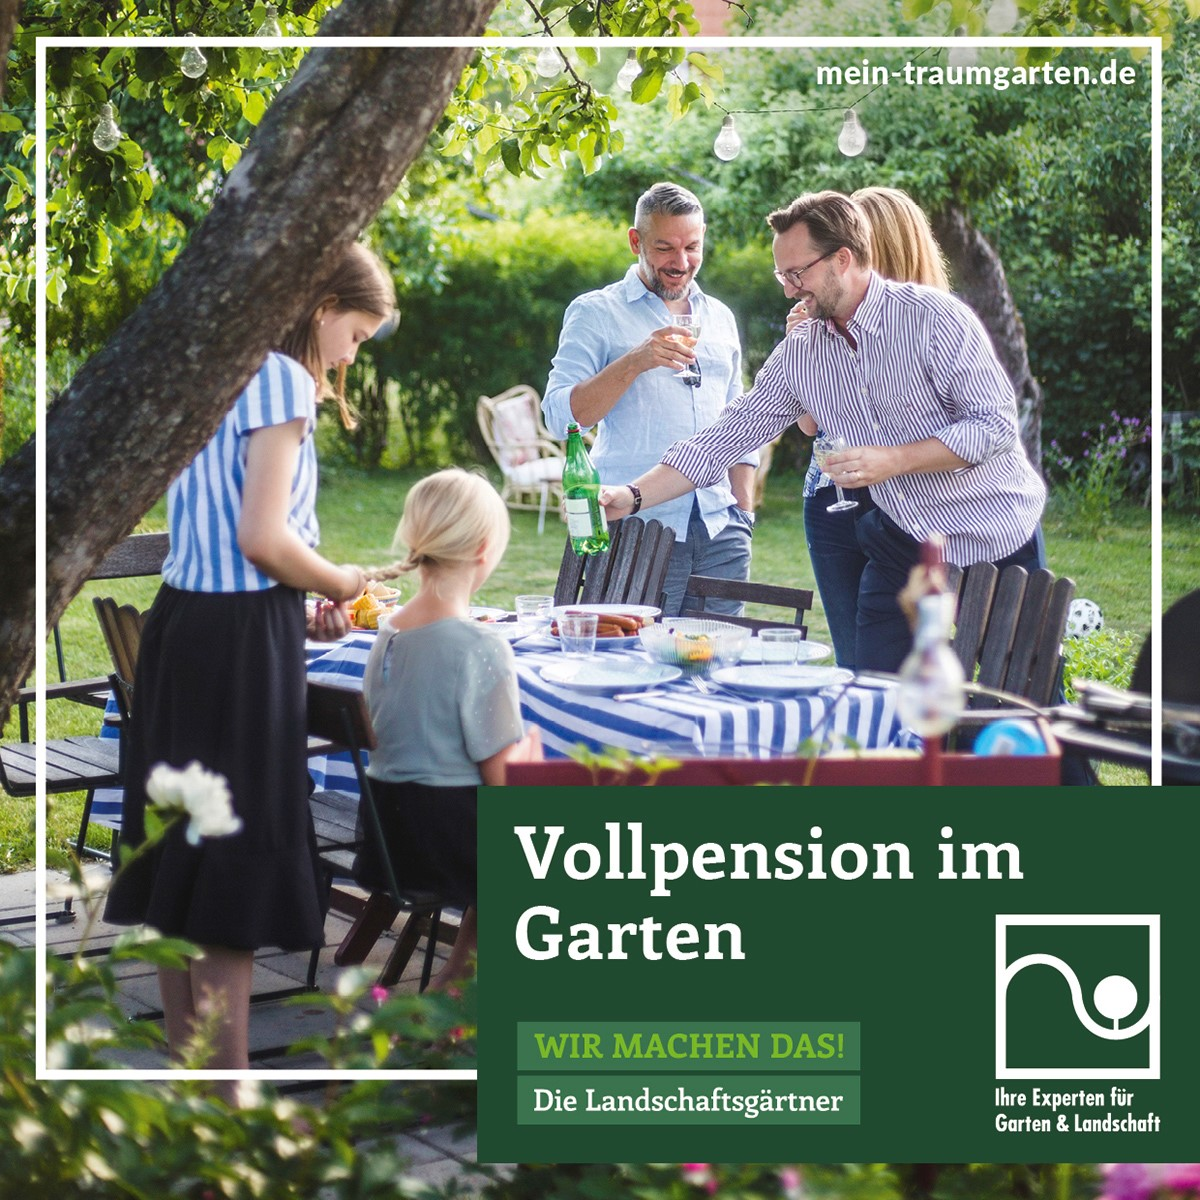 Motive Facebook_Vollpension im Garten